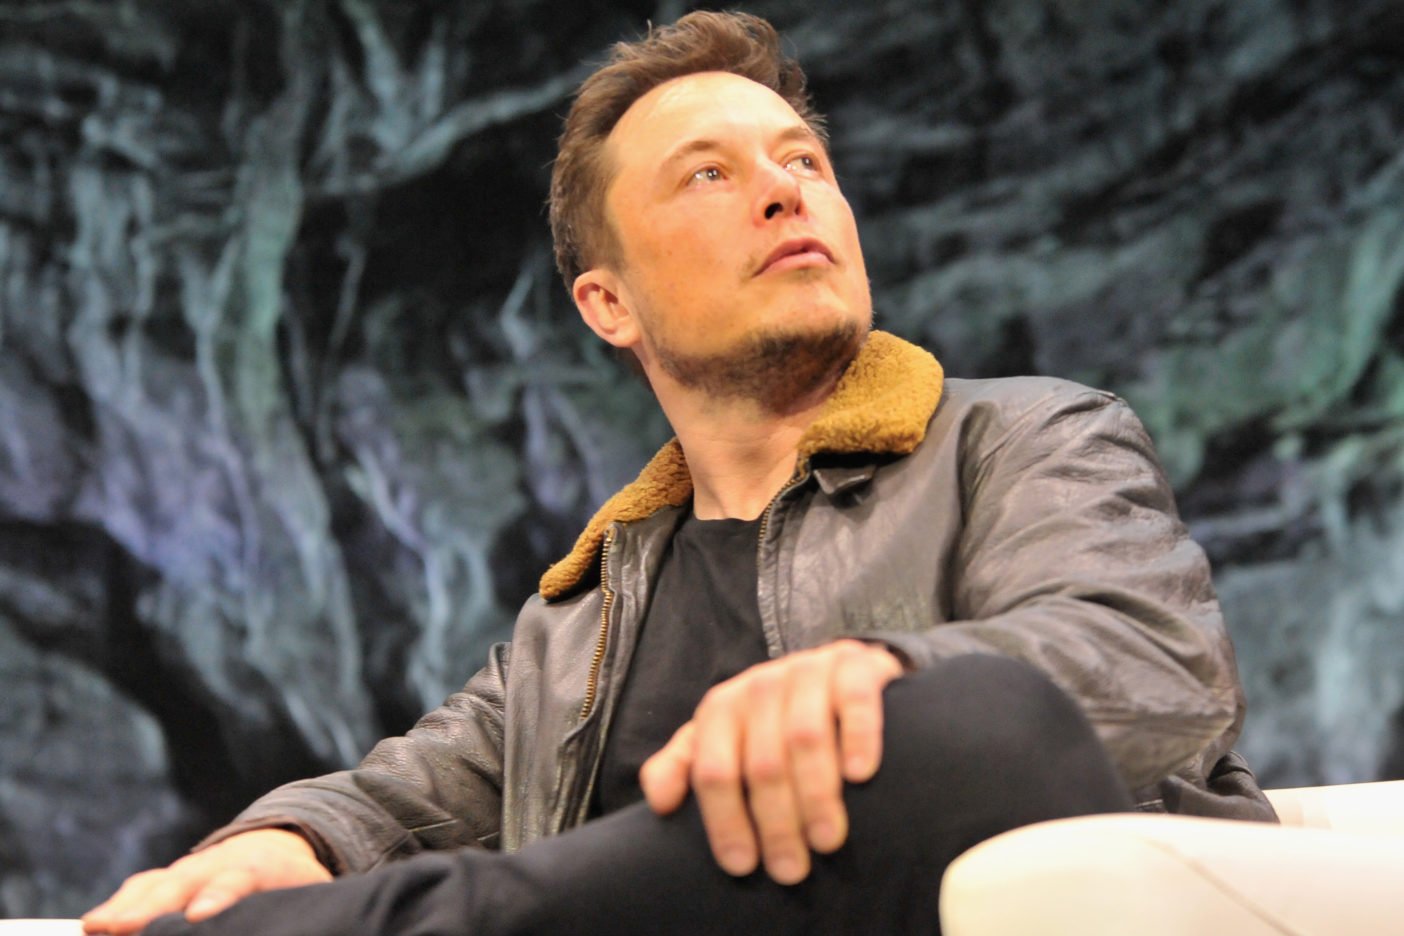 Elon Musk Is The Saviour Humanity Needs GettyImages 930533880 1404x936